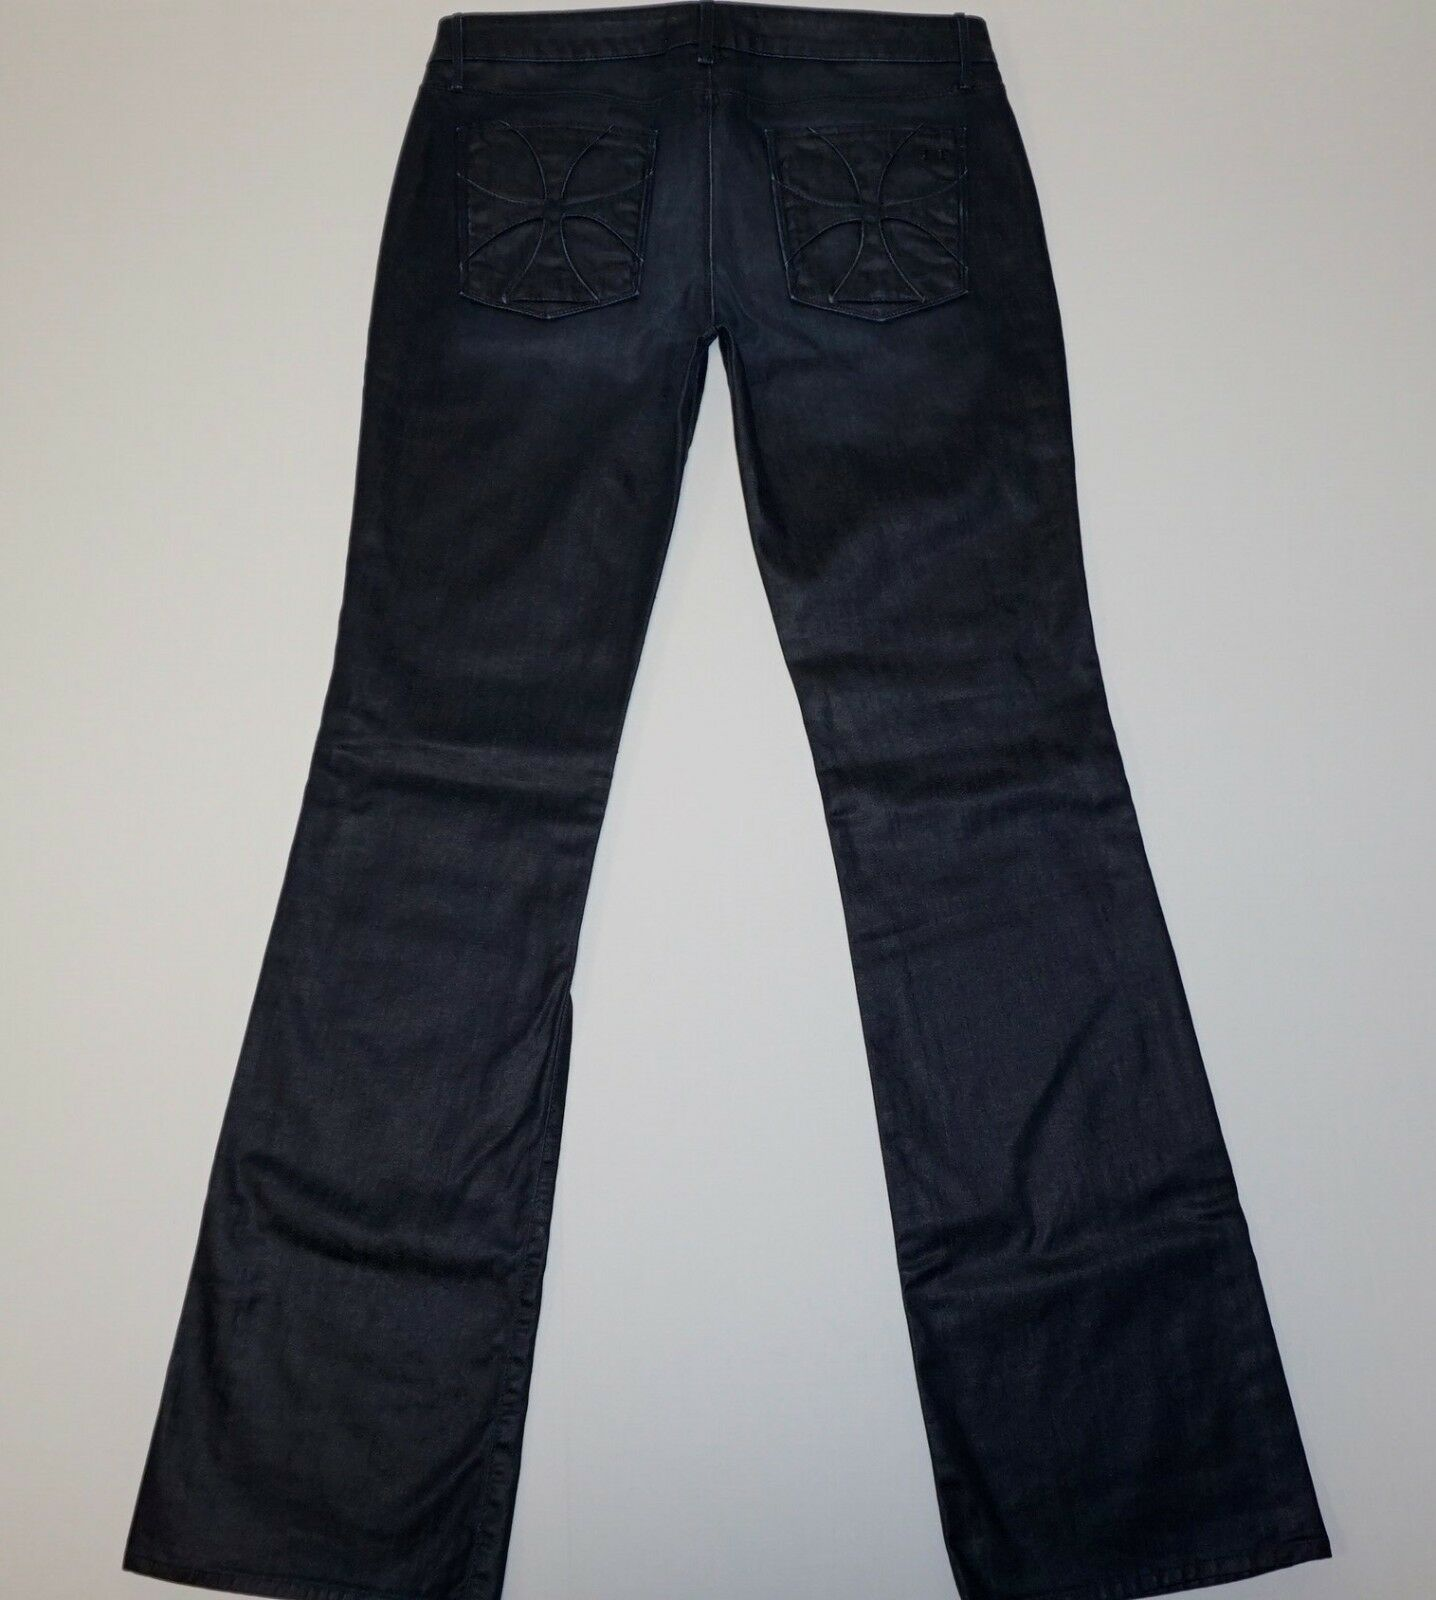 Habitual Handcrafted Jeans Trouser Style Women's Size 30 (34  Inseam)